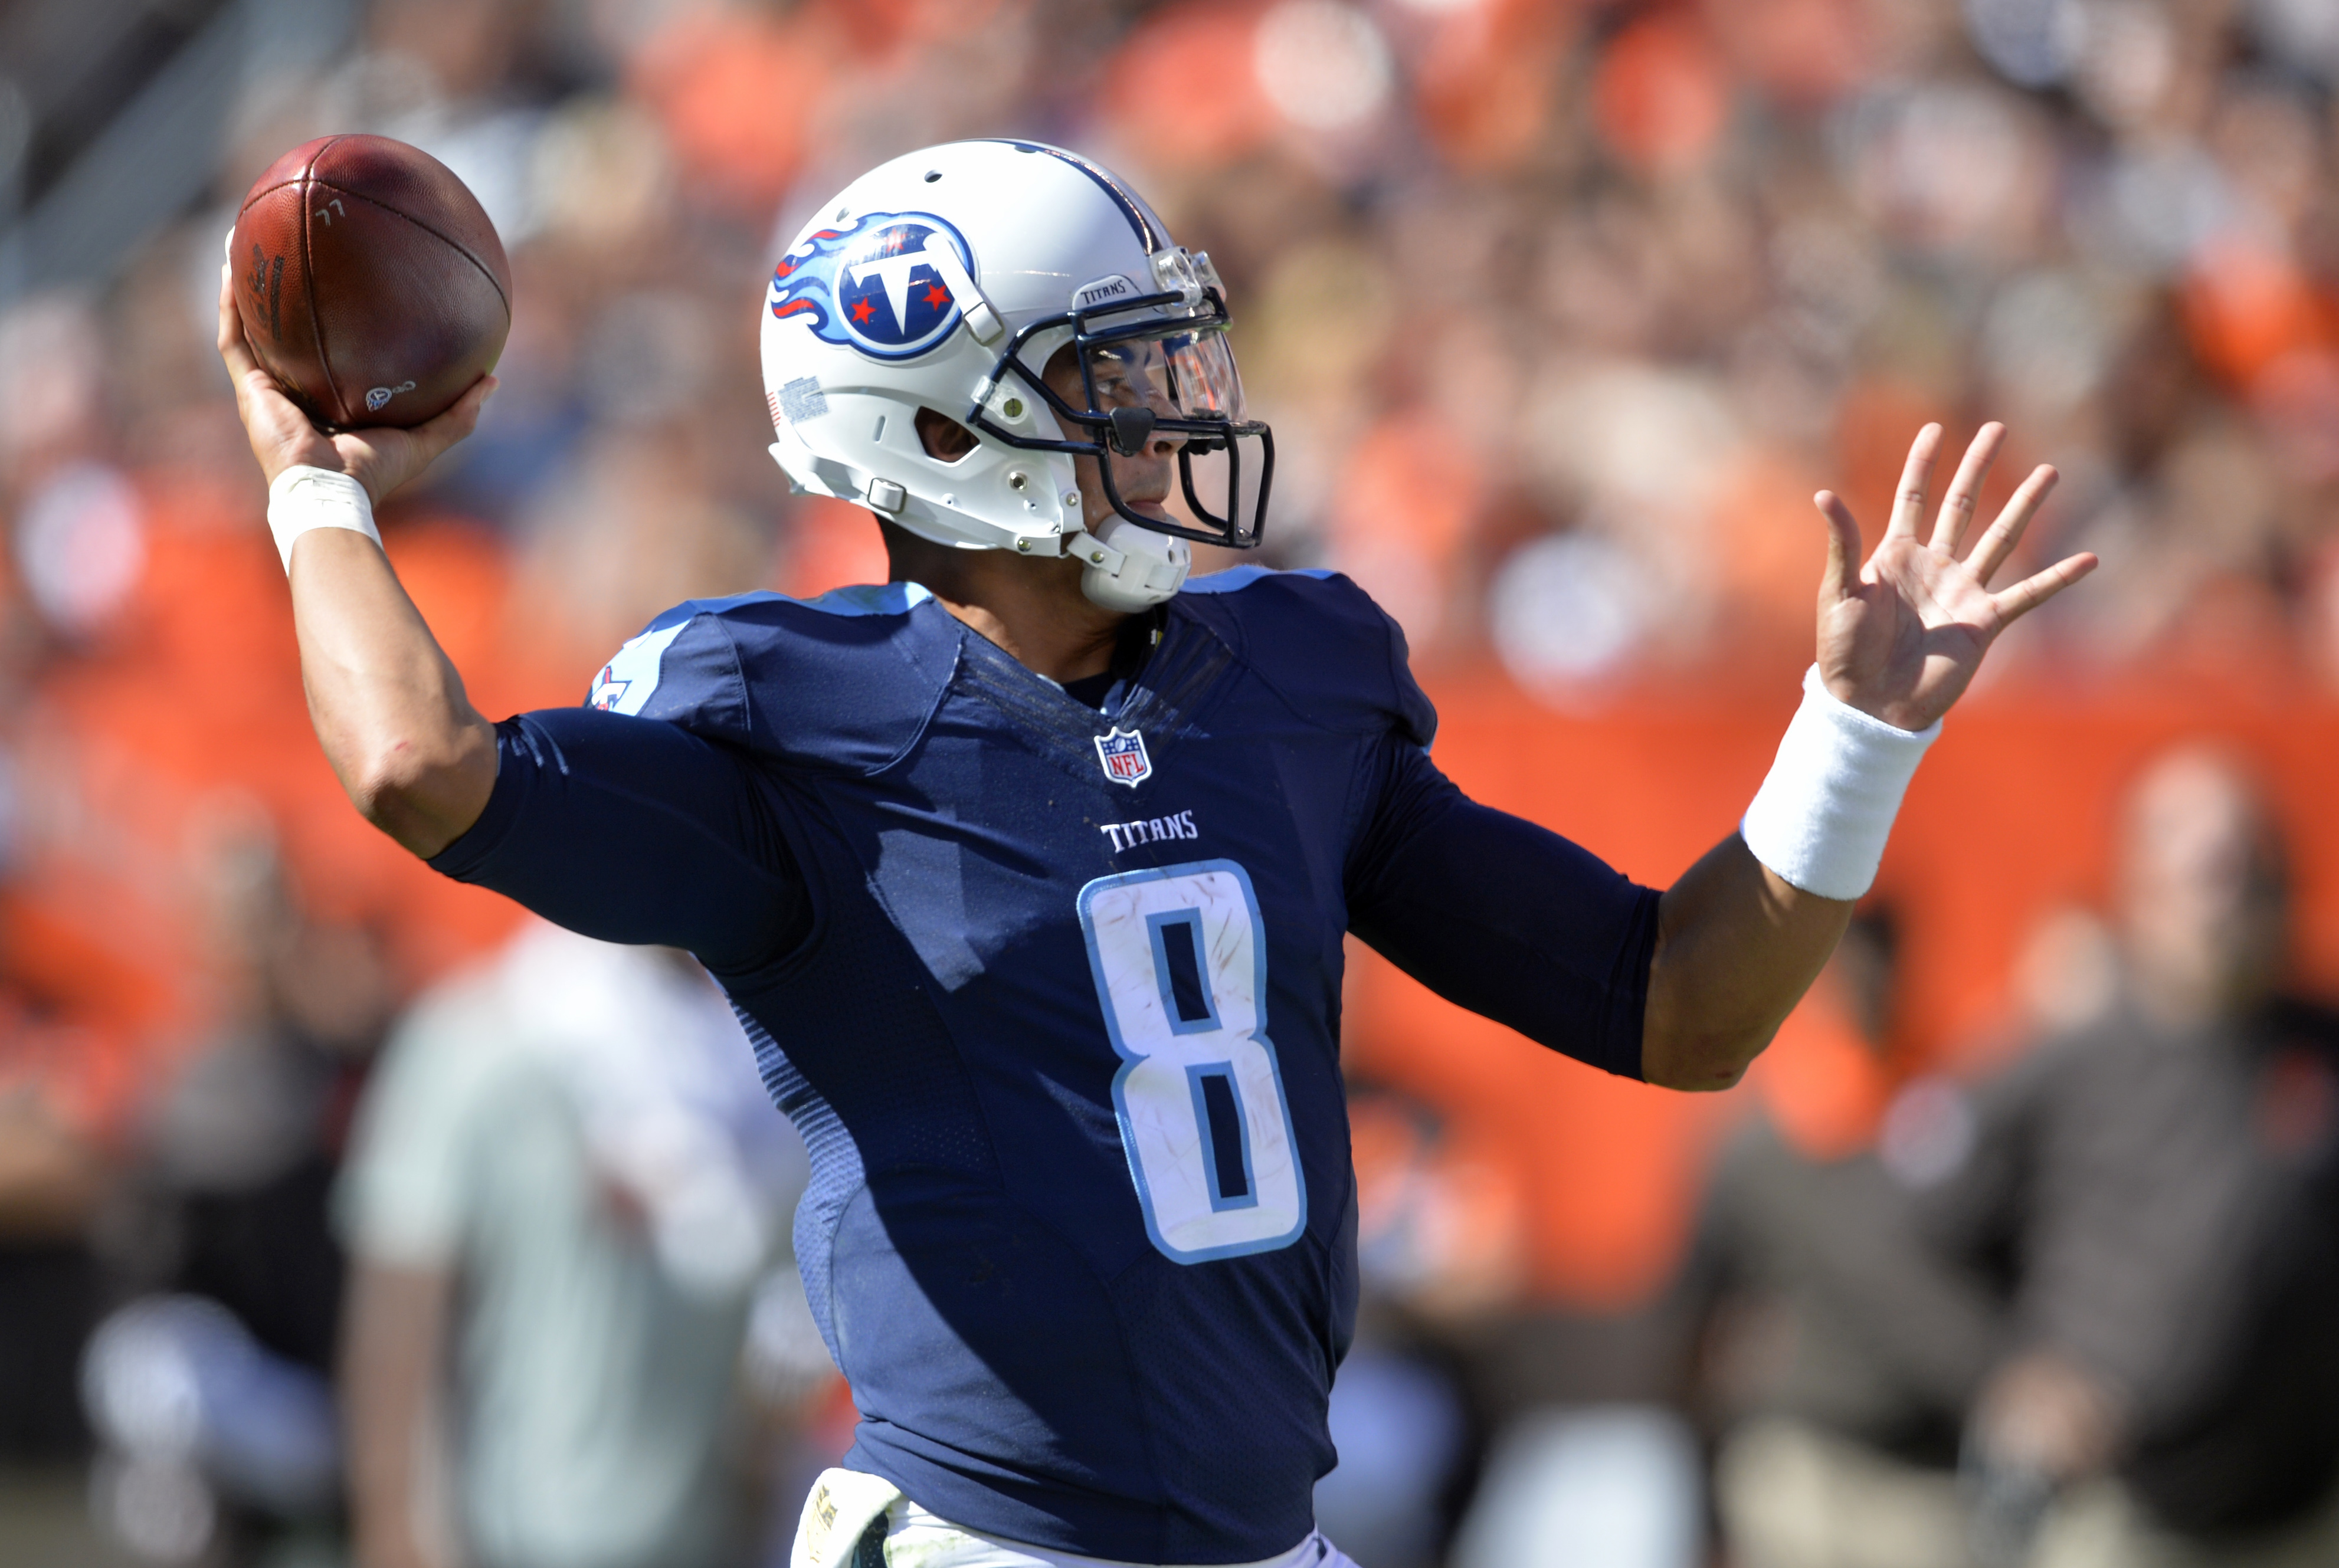 Tennessee Titans quarterback Marcus Mariota (8) throws a 19-yard touchdown pass to tight end Anthony Fasano during the second half of an NFL football game Sunday, Sept. 20, 2015, in Cleveland. (AP Photo/David Richard)